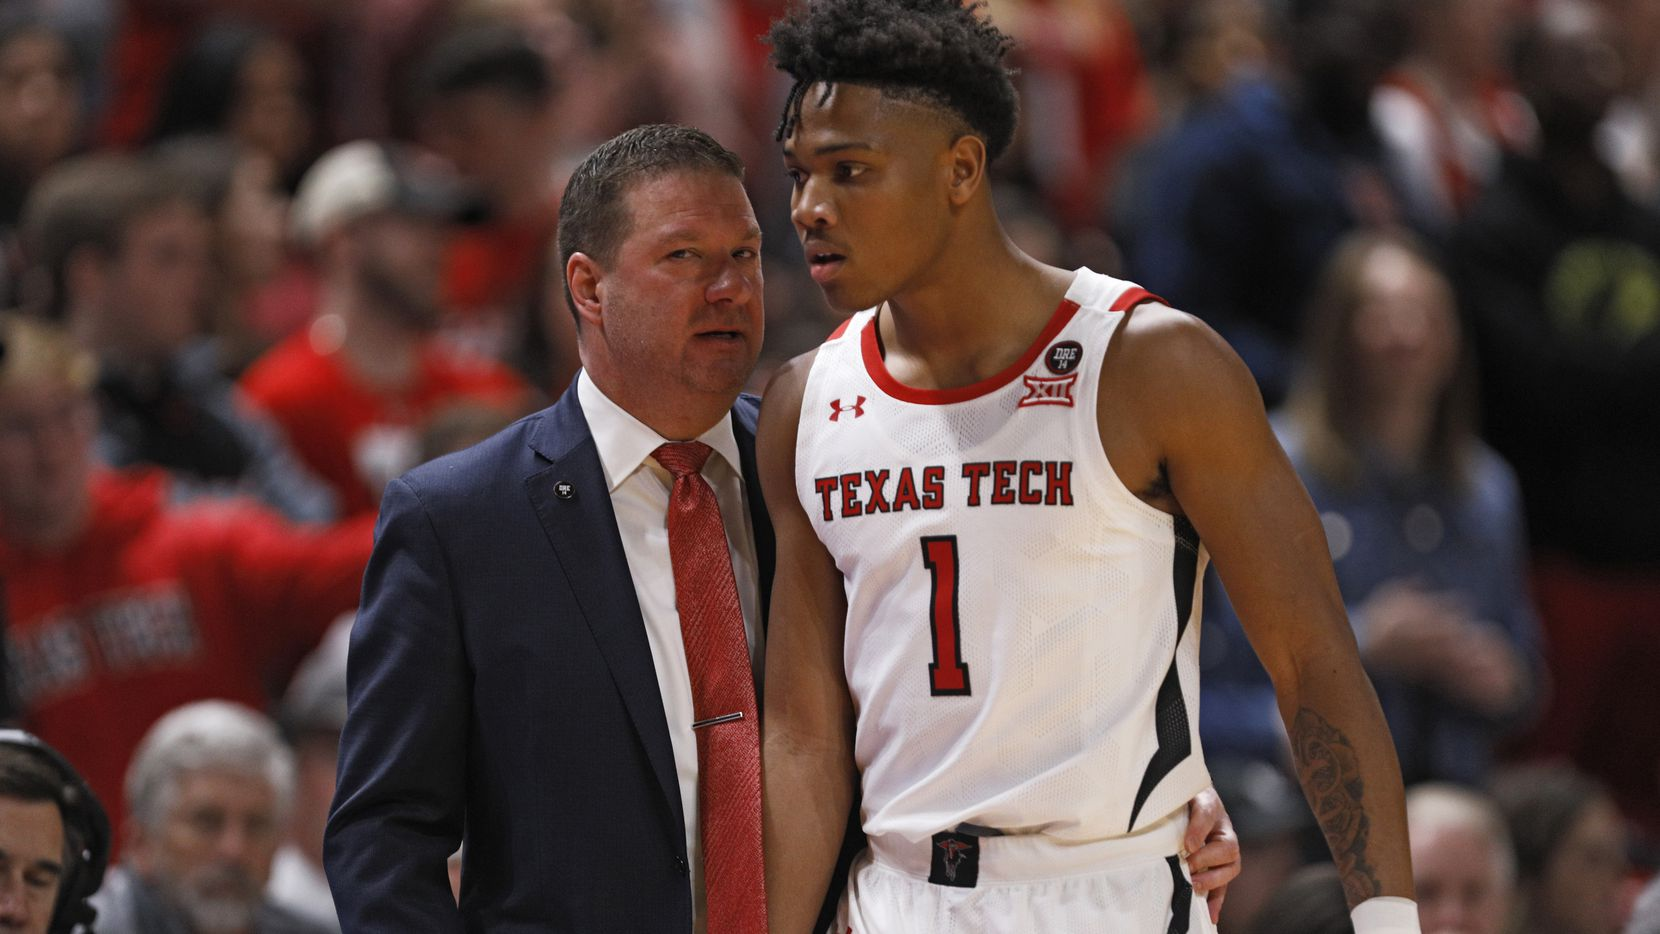 Texas Tech coach Chris Beard, left, talks to Terrence Shannon Jr. (1) during the first half of an NCAA college basketball game against Iowa State, Saturday, Jan. 18, 2020, in Lubbock, Texas. (AP Photo/Brad Tollefson)